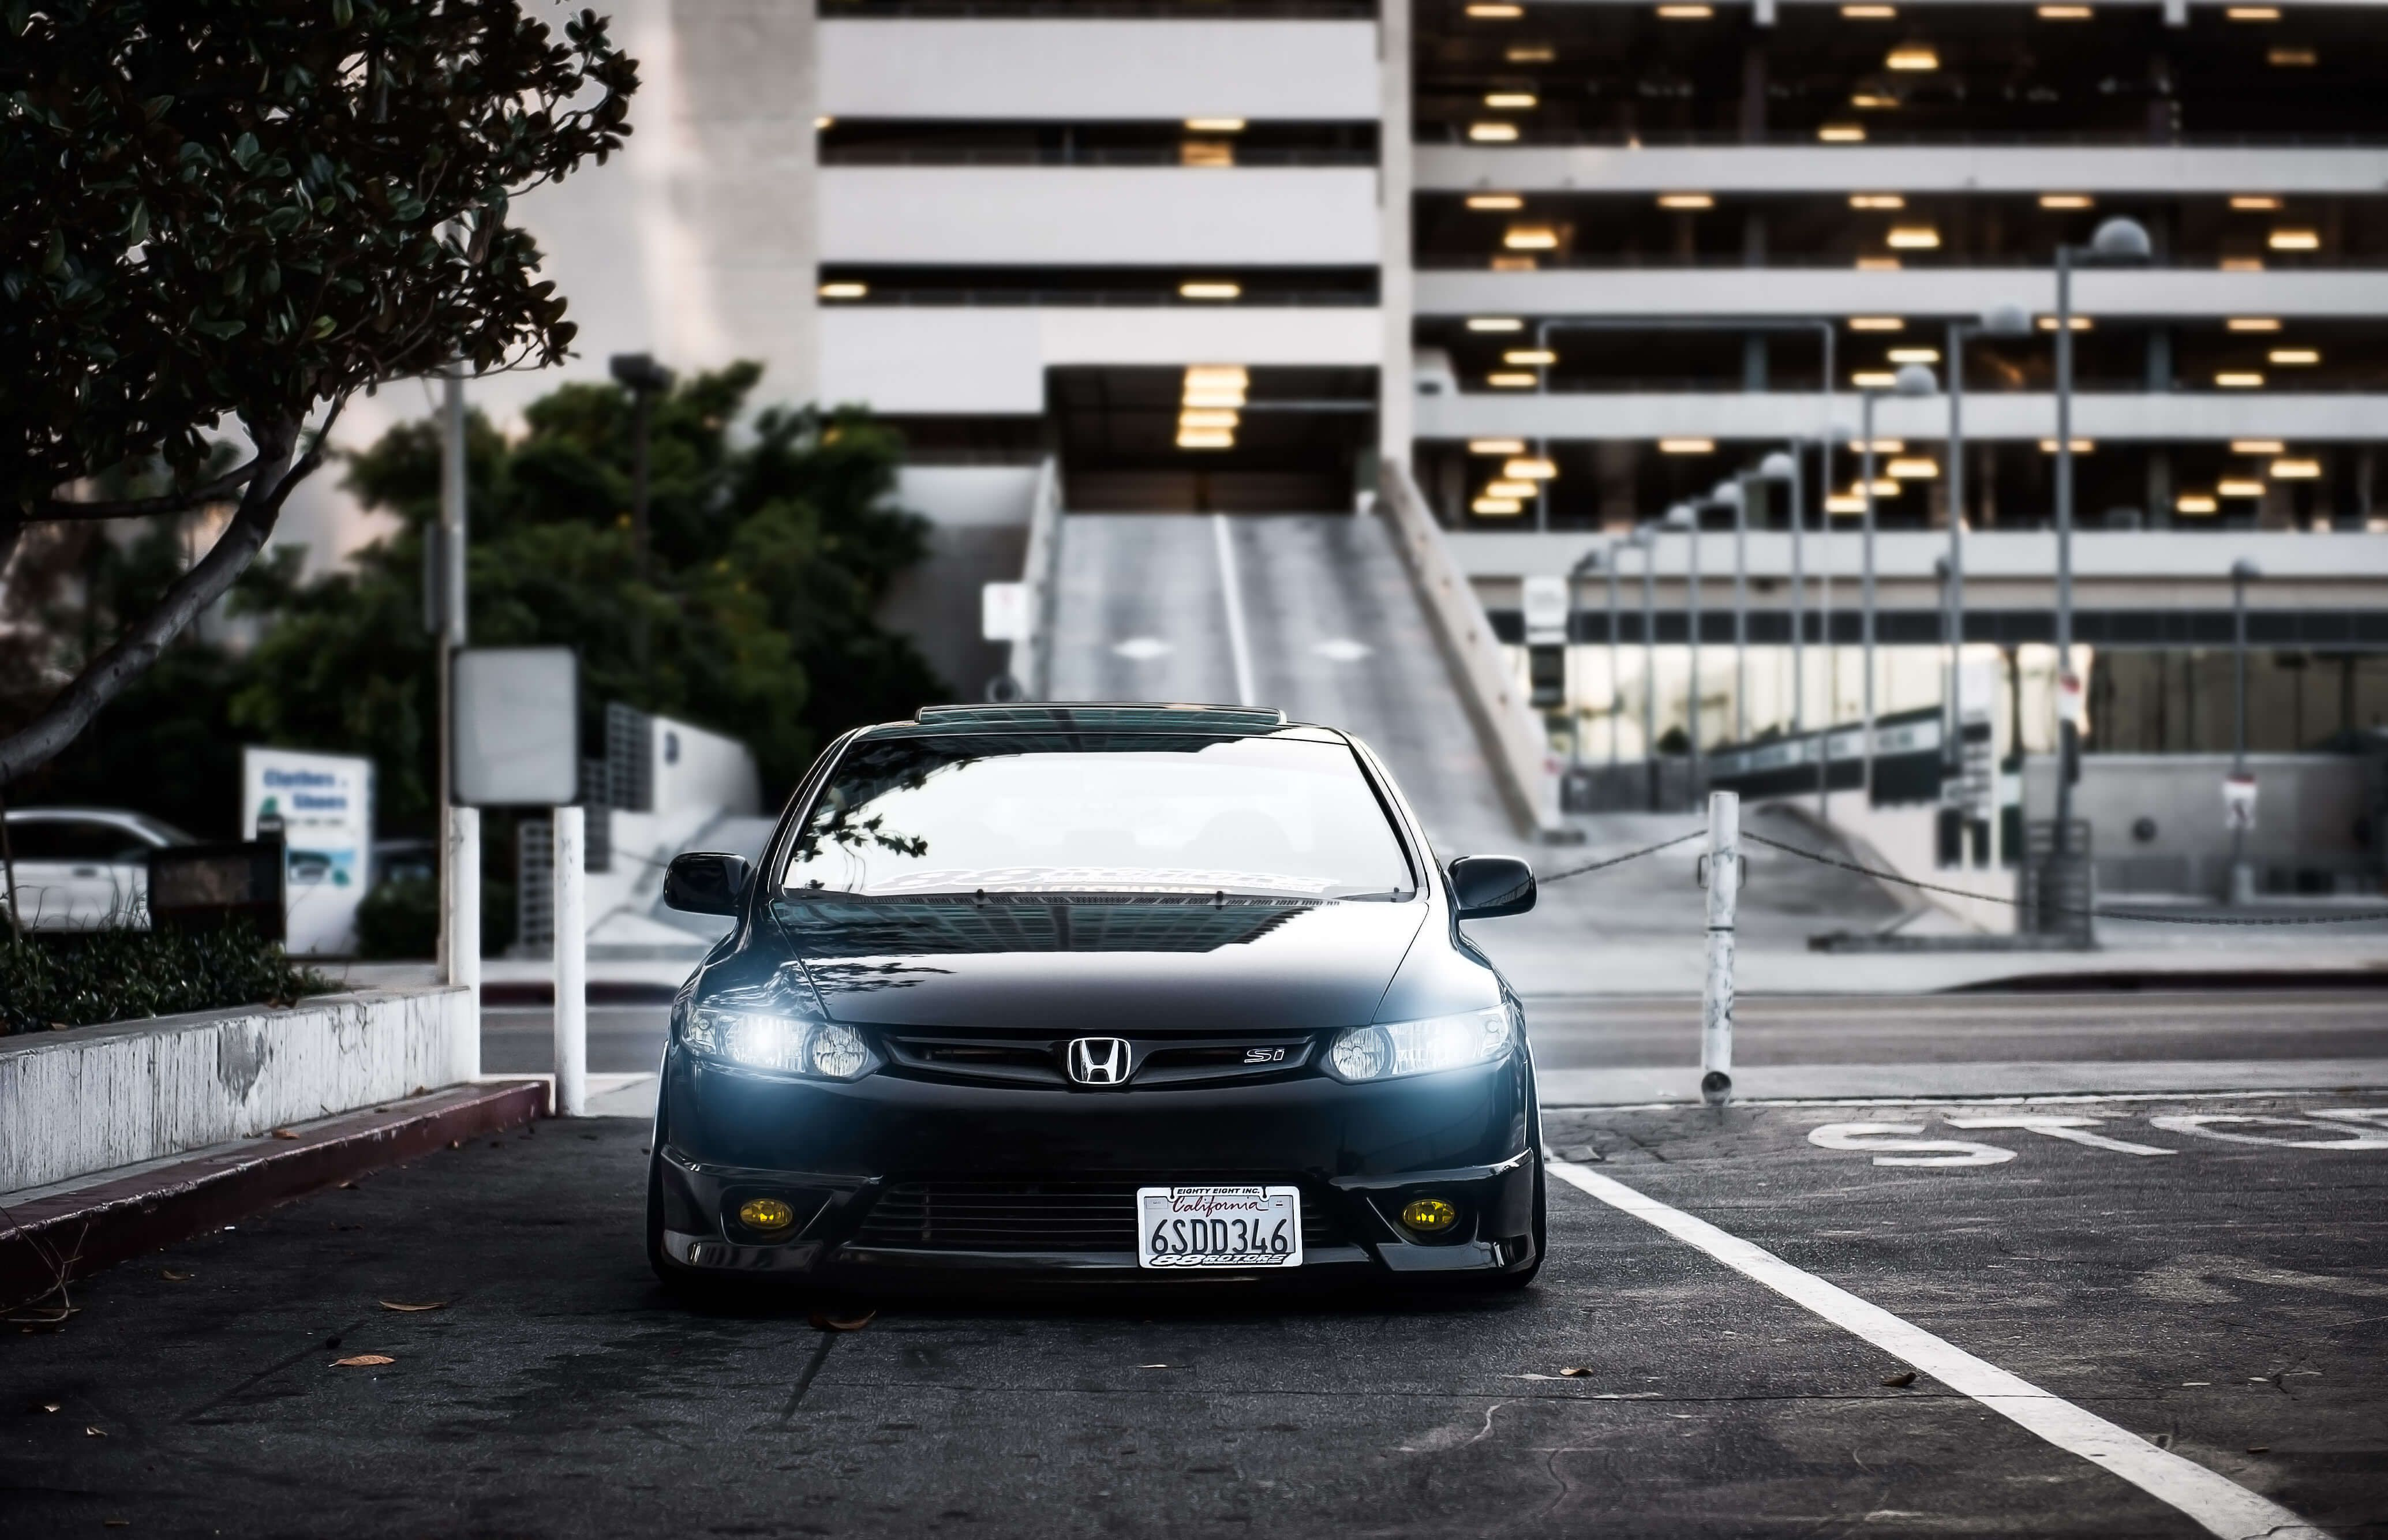 Honda Civic Si Jdm Cars